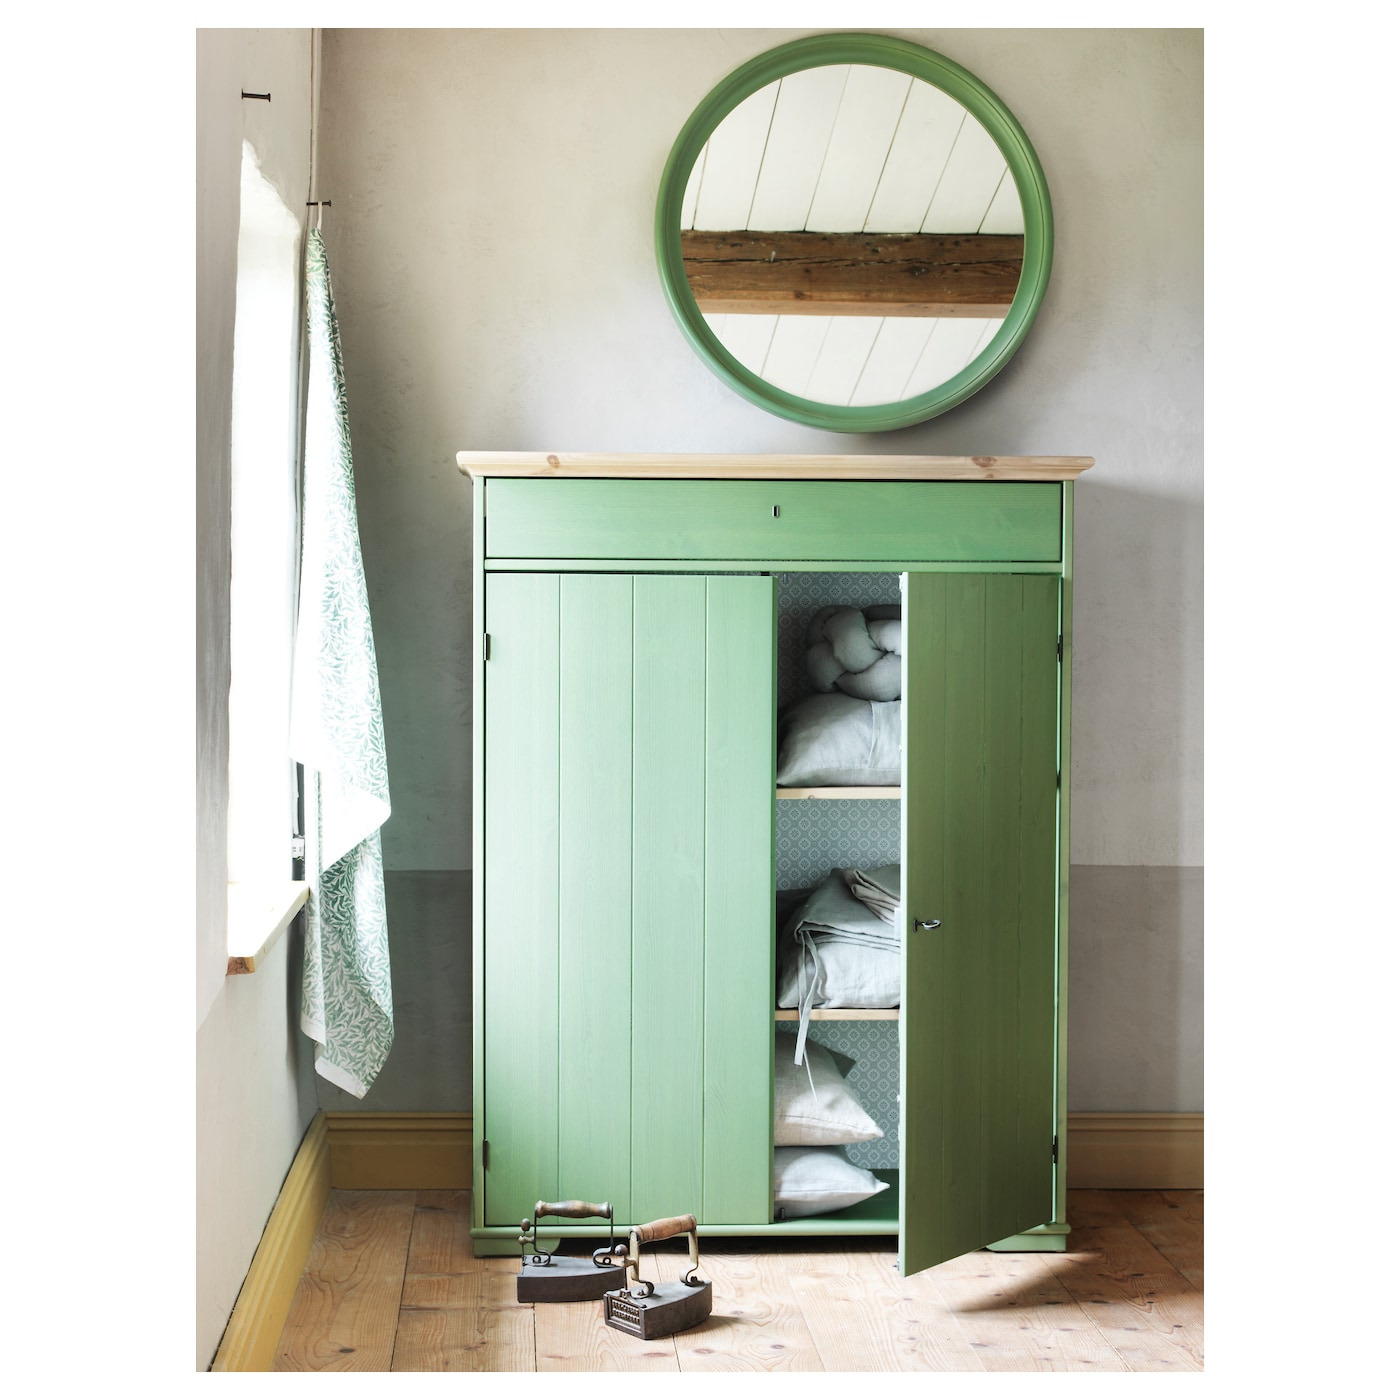 Ikea Hurdal Linen Cabinet The Drawer Slide Smoothly And Steadily On Wooden Gliders